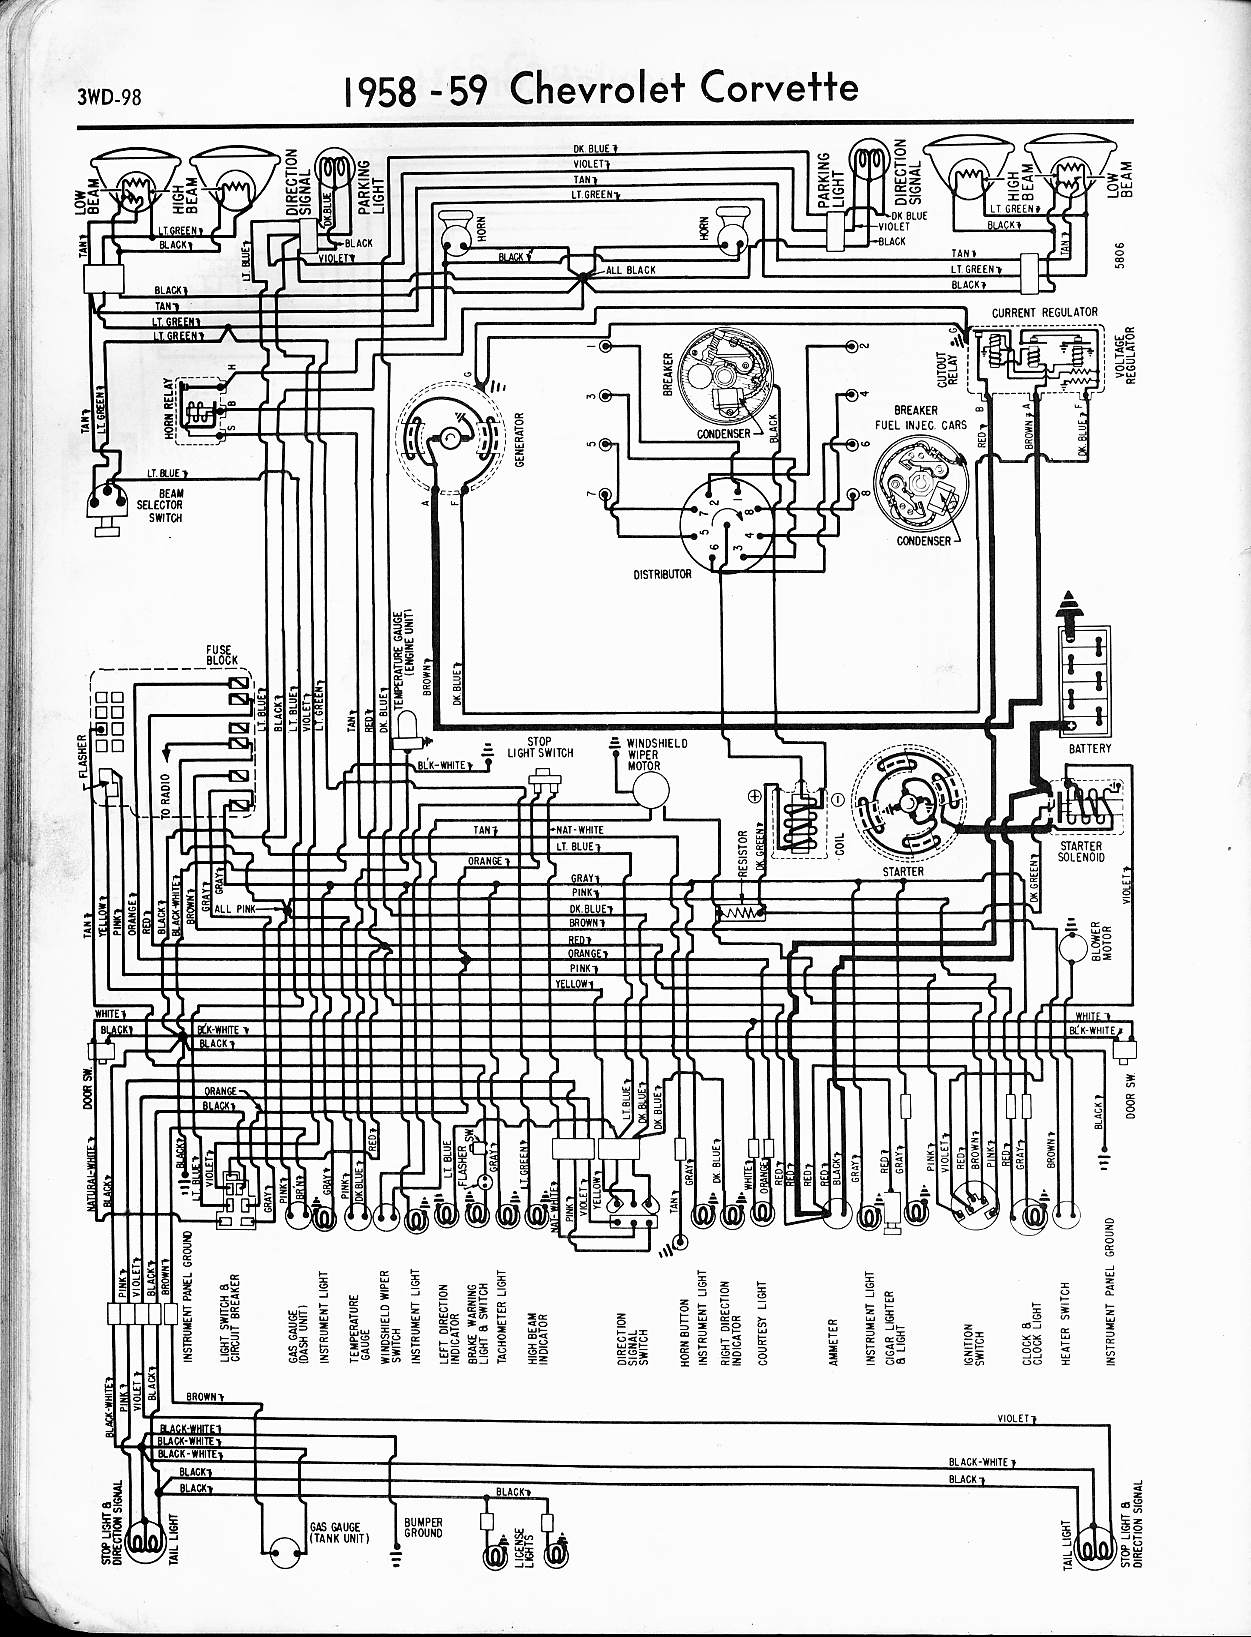 hight resolution of 1960 chevy wiring diagram wiring diagram todays 1971 corvette wiring diagram 1960 corvette wiring diagram